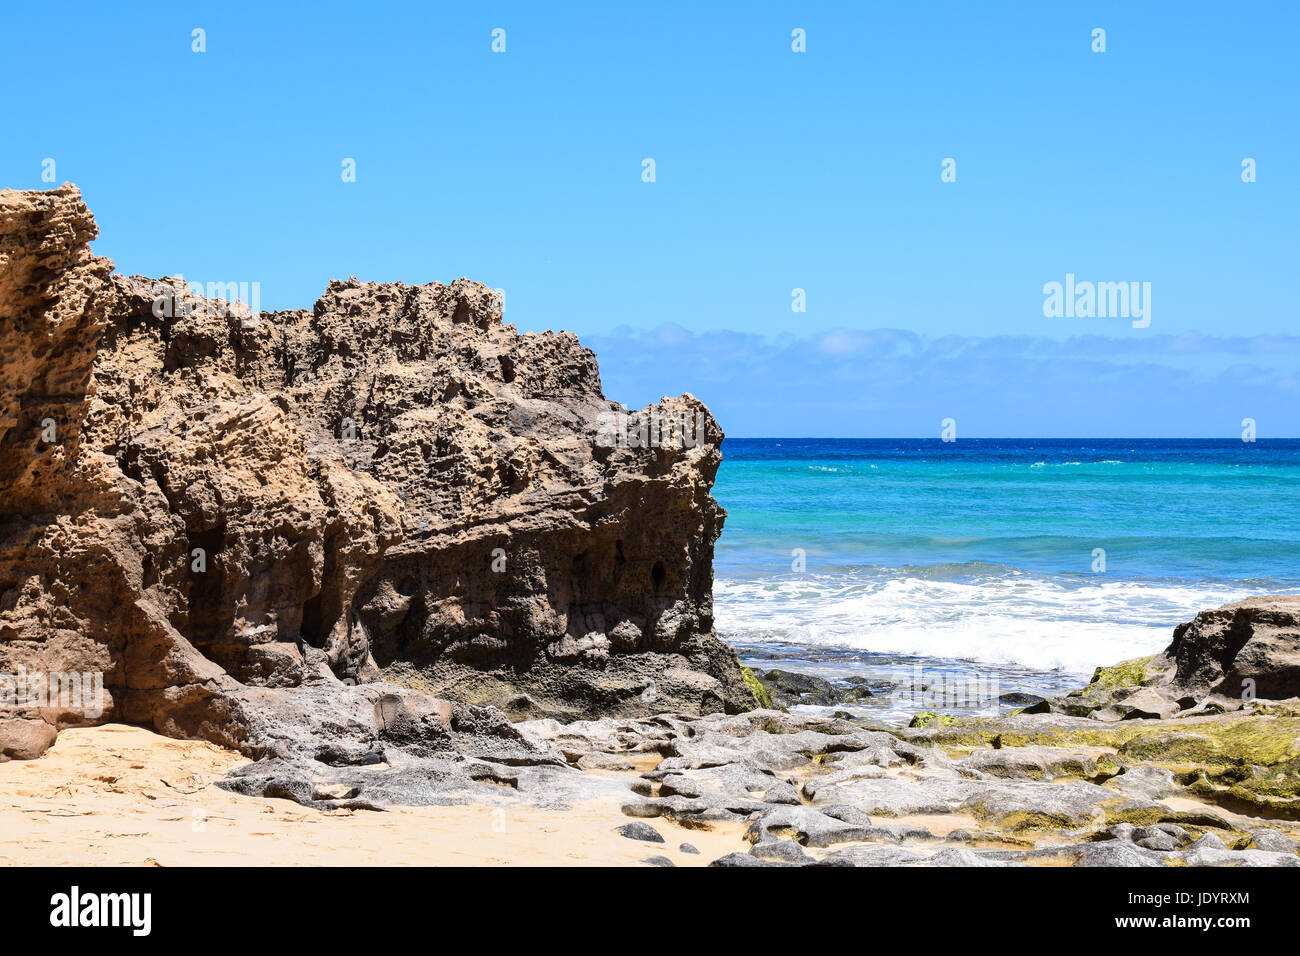 Seascape of the beach at Ponta da Calheta, Porto Santo Island, Portugal - Stock Image